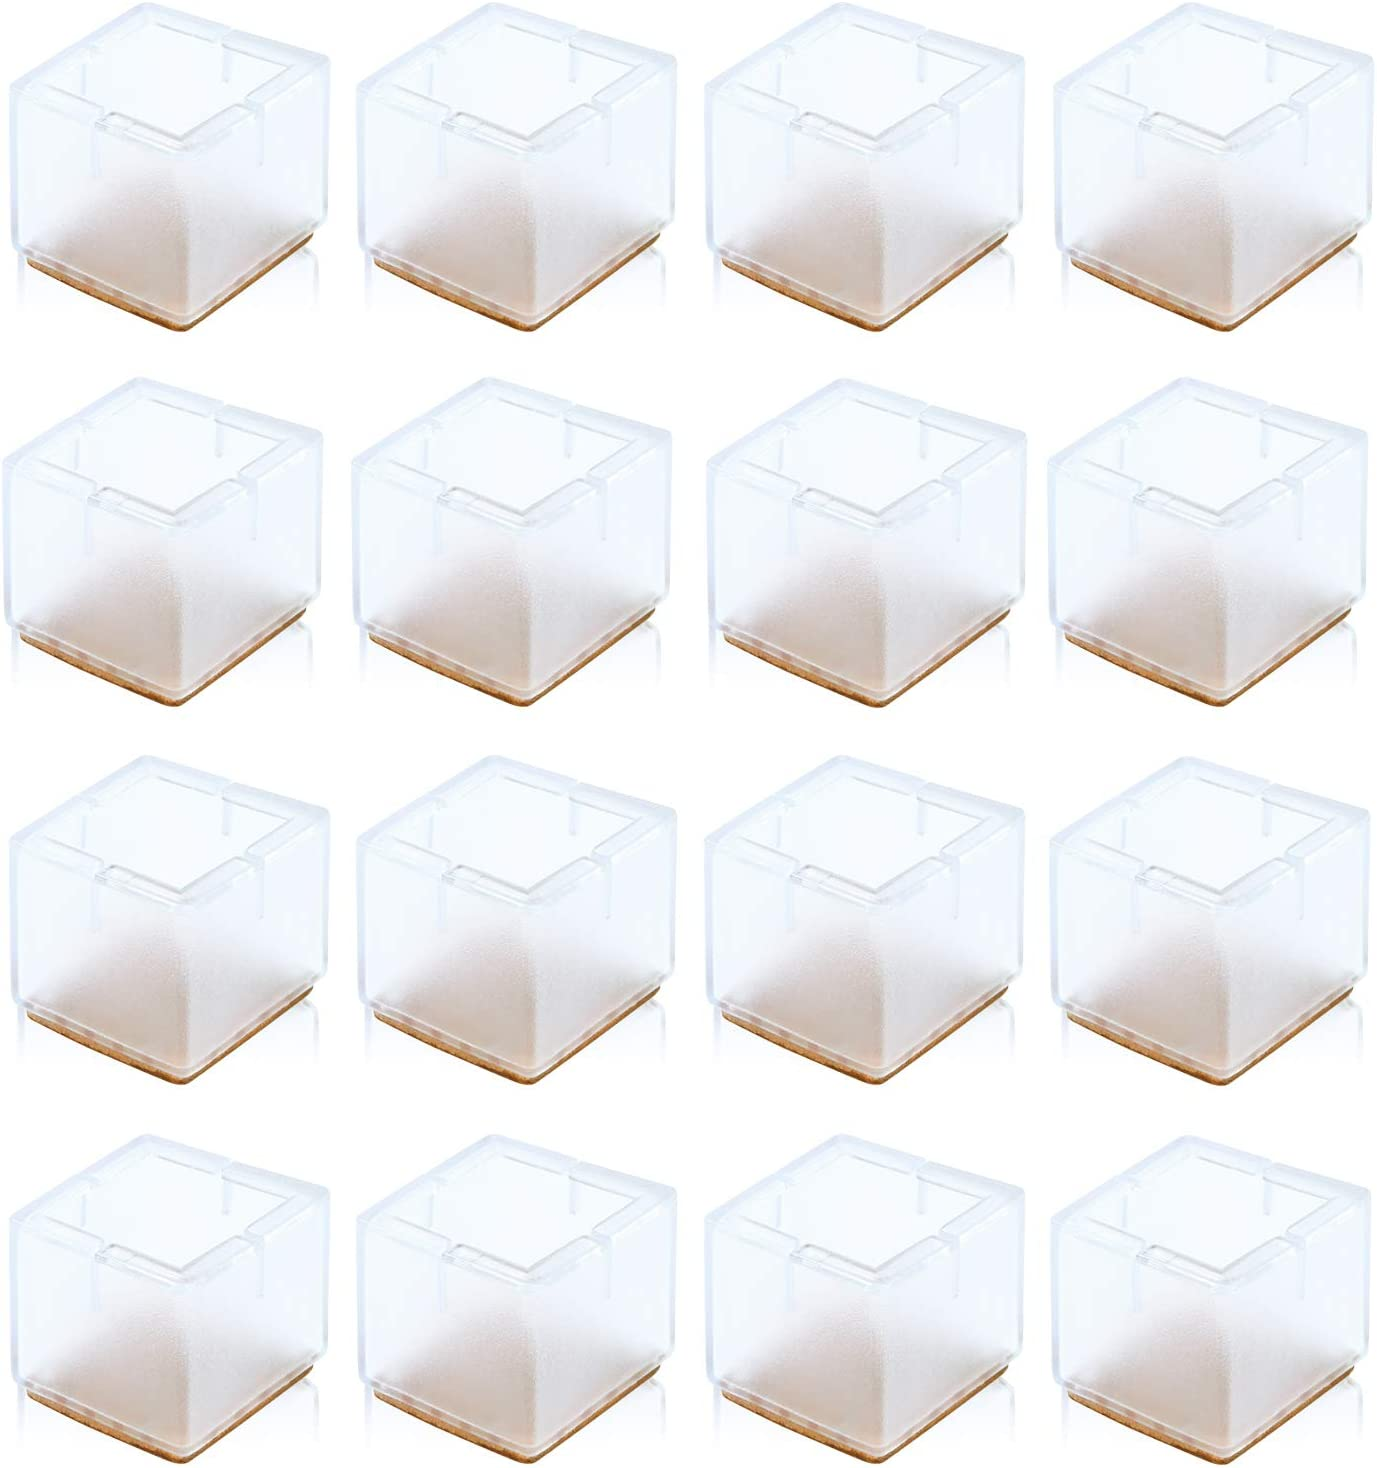 Silicone Furniture Chair Legs Caps, Furniture Leg Silicon Protection Covers, Anti-Slip Bottom Chair Pads, Foot Protection Bottom Cover Prevents Scratches and Noise Without Leaving Marks (Square)